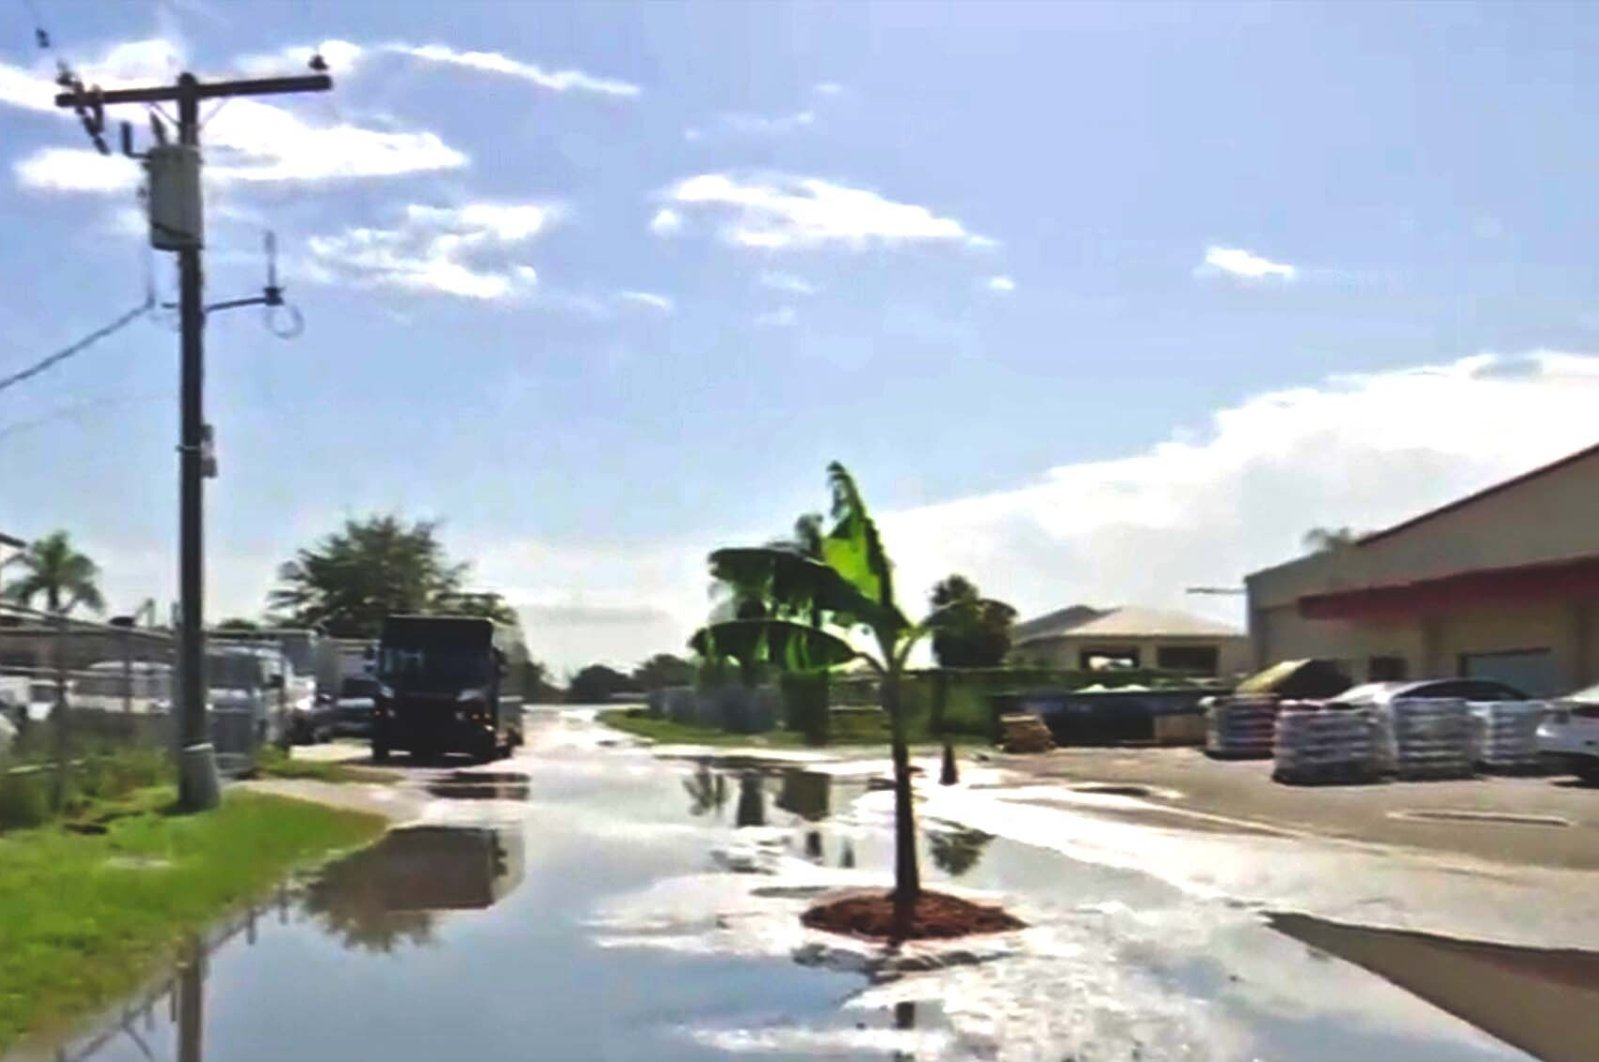 This screengrab taken from a Wink News report shows the banana tree planted in the pothole in Florida's Fort Myers, U.S., Sept. 7, 2021. (Screengrab/Wink News)